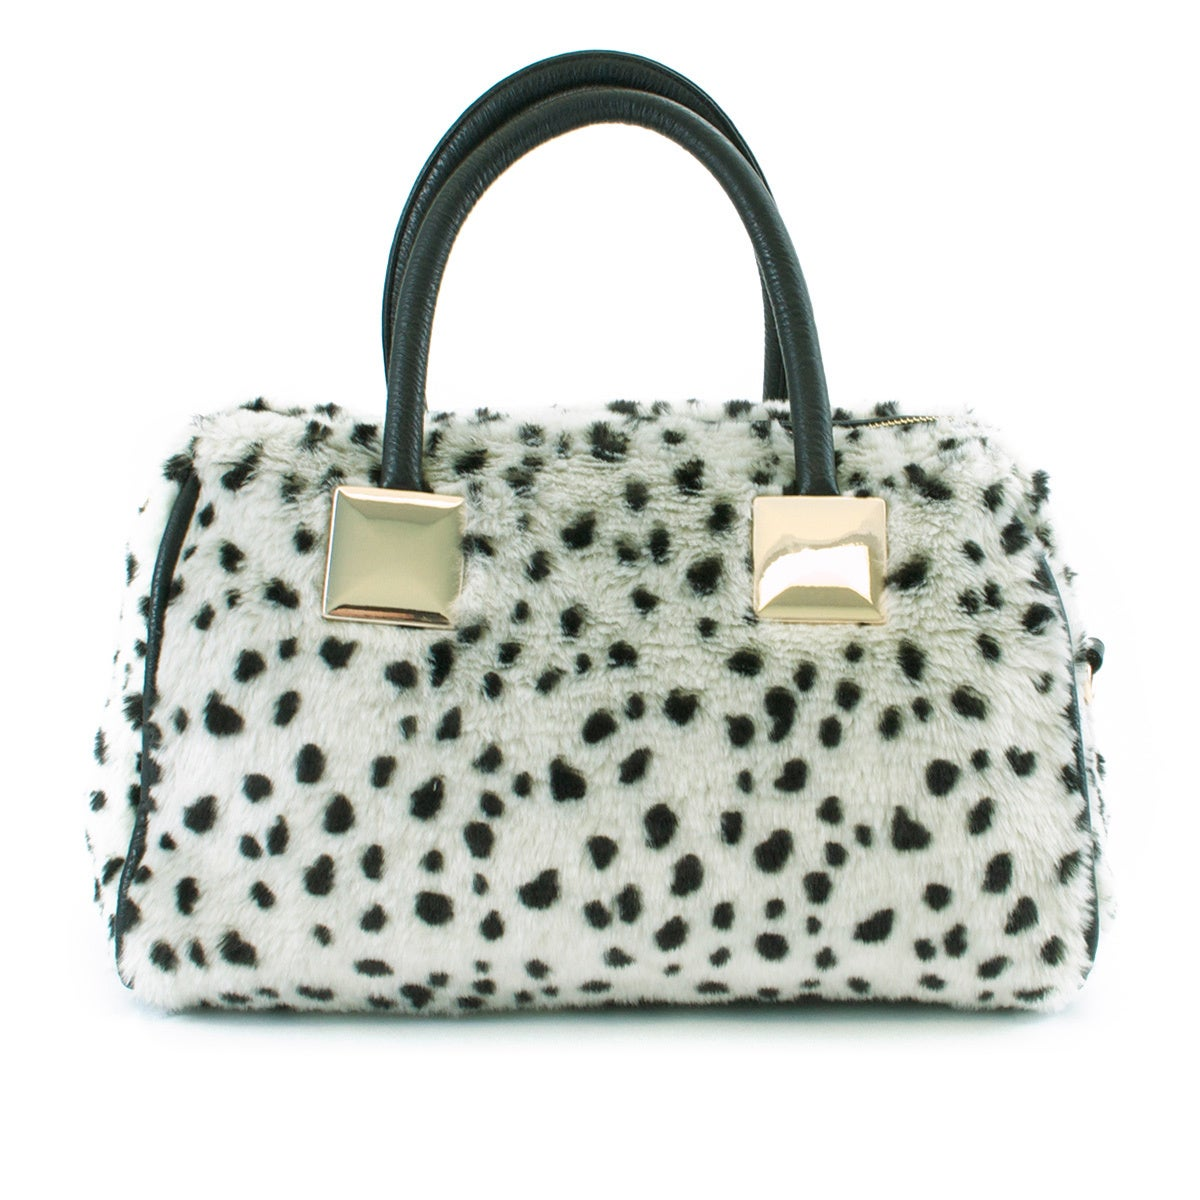 8ab419acee Shop Adrienne Landau Snow Leopard Satchel - Free Shipping Today - Overstock  - 8911380